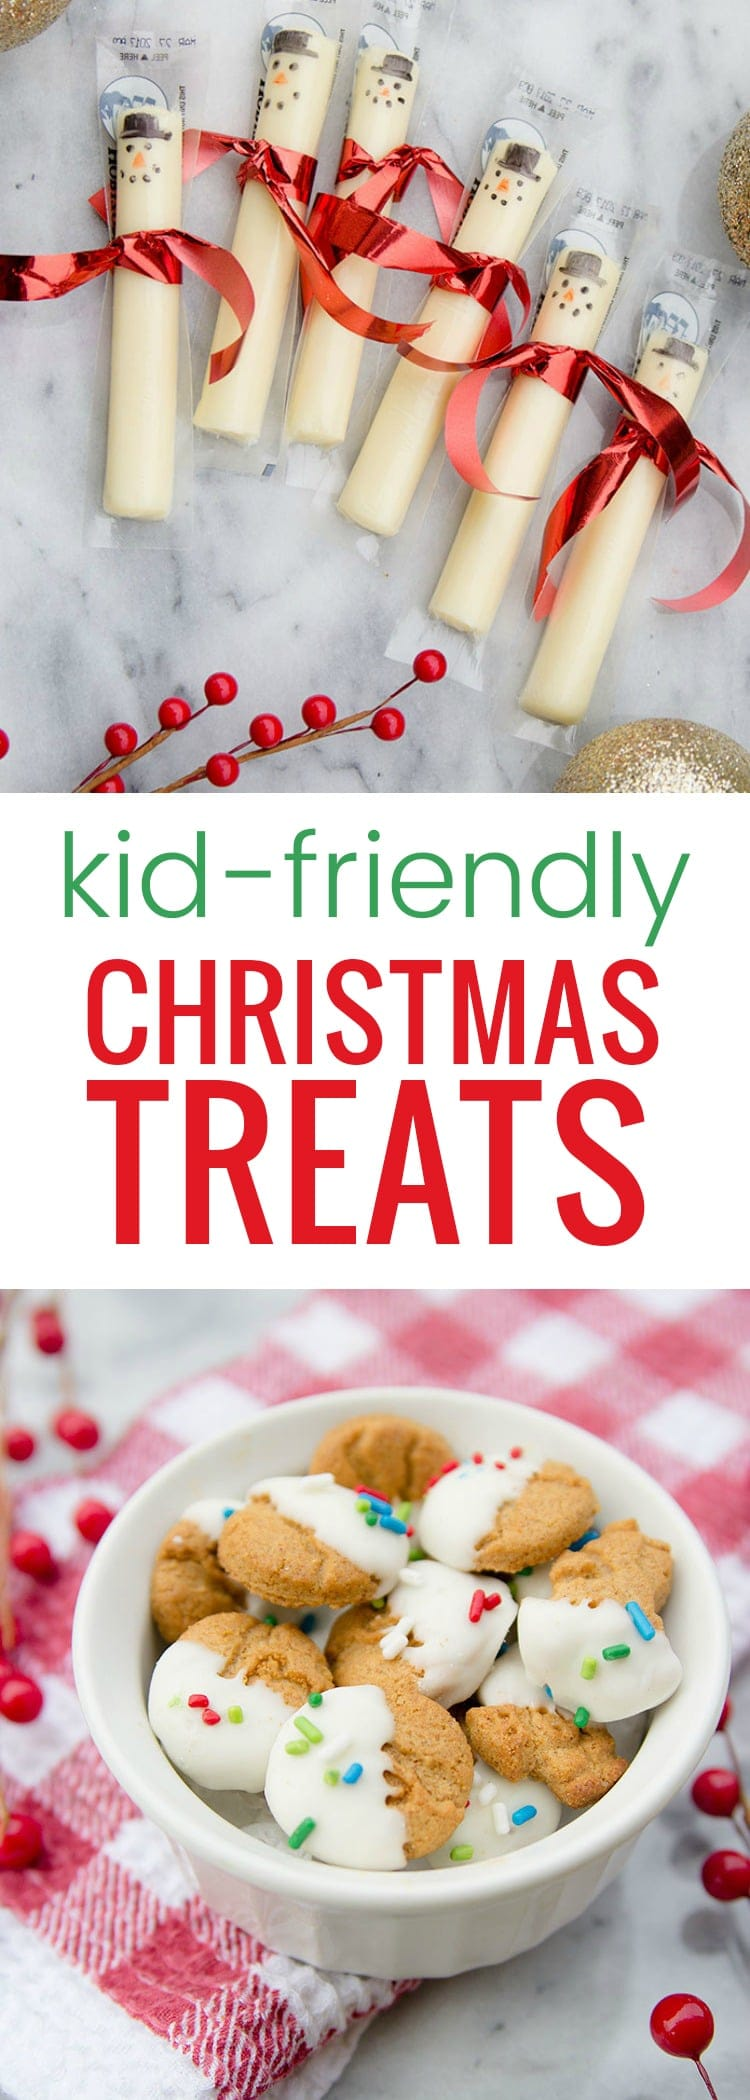 Kid-friendly Christmas treats - so easy and yummy #HorizonOrganic #ad @HorizonOrganic